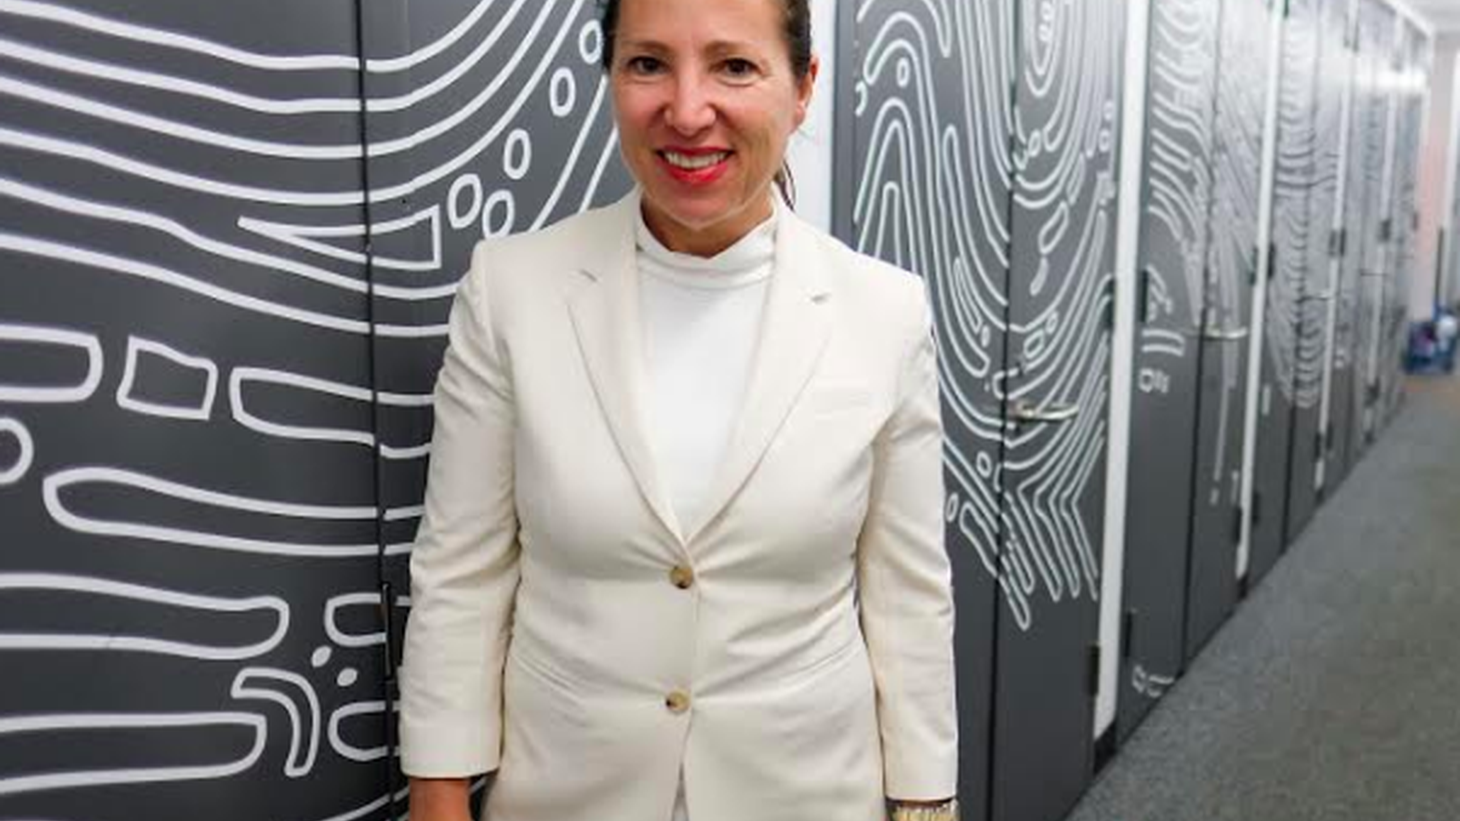 Two Democrats are running to be California's second in command: the lieutenant governor. We hear from both candidates this week. Eleni Kounalakis has never held elected office, but she says she's ready. She was a real estate mogul and U.S.